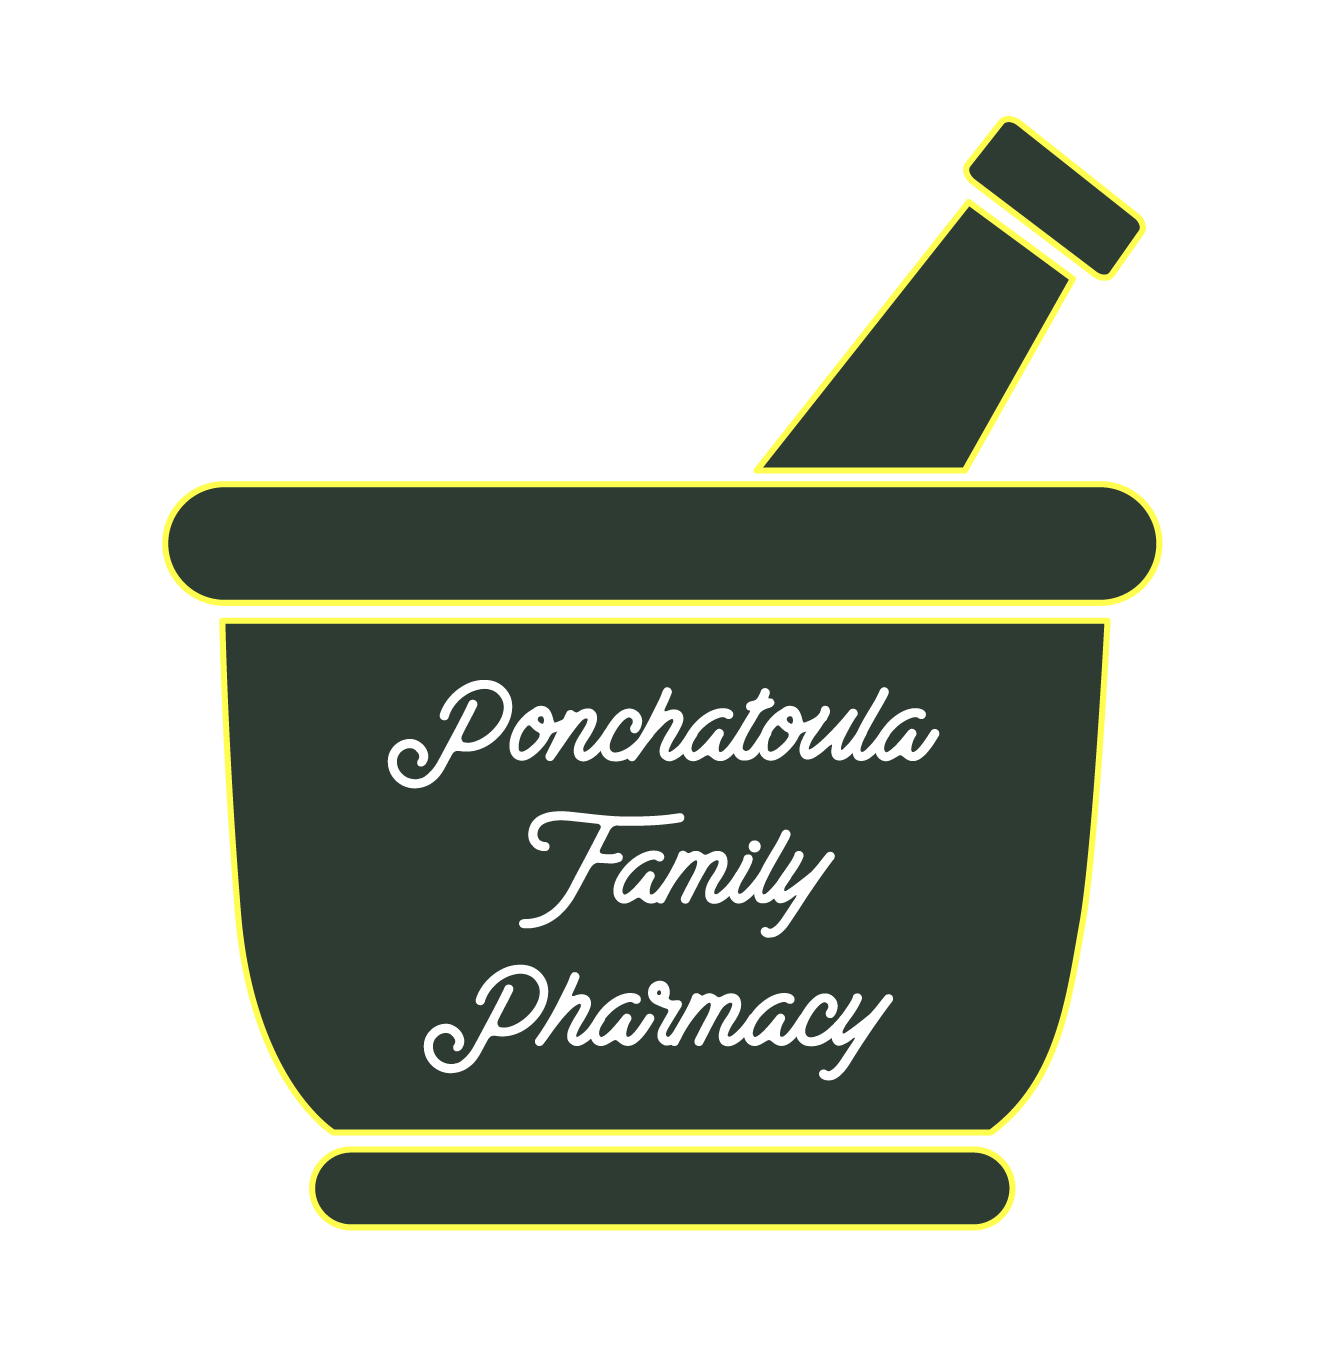 Ponchatoula Family Pharmacy